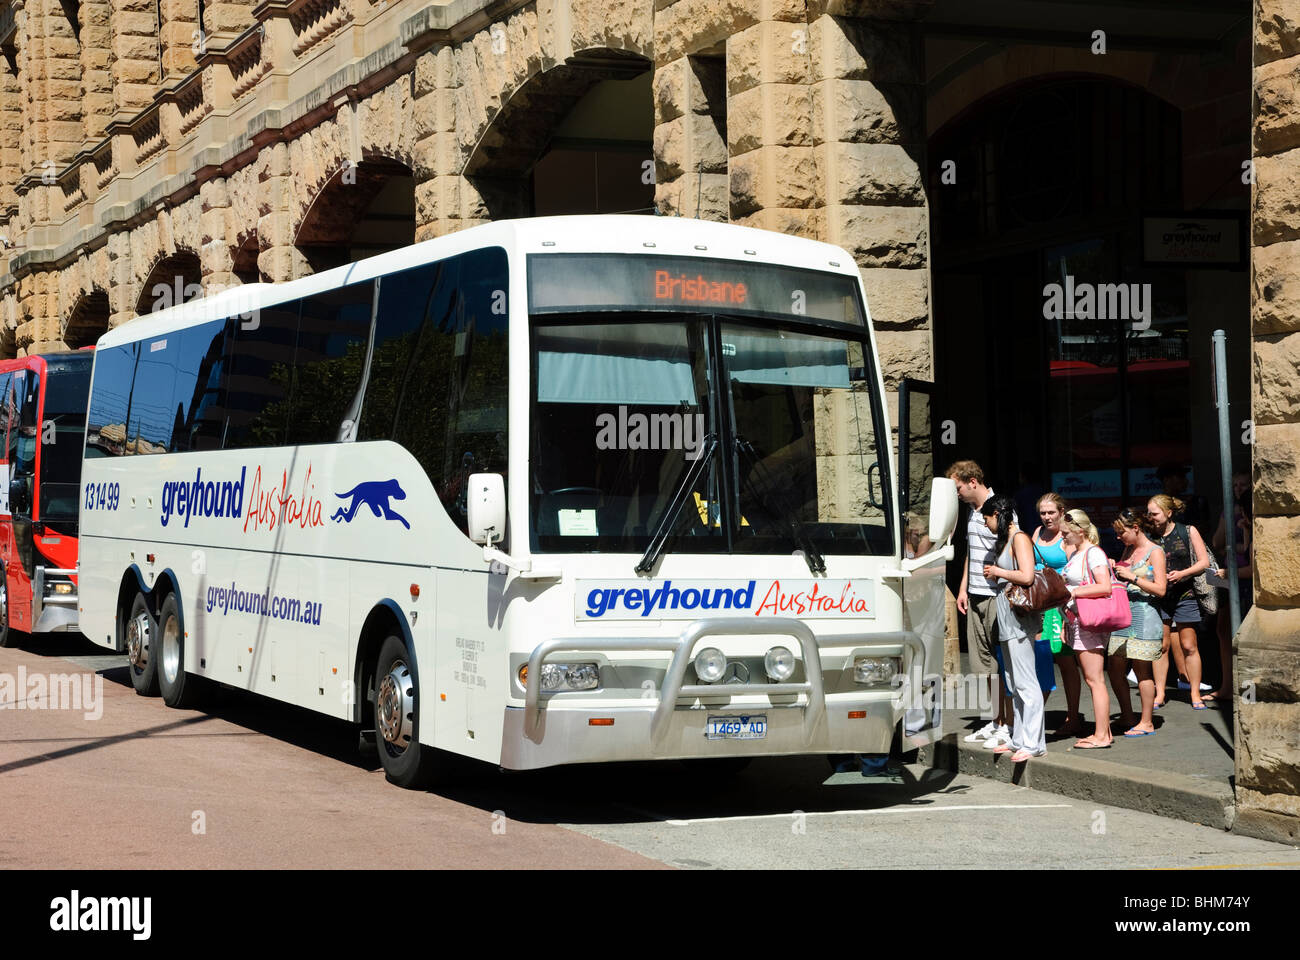 Long distance coach service: passengers board a bus at the beginning of a journey. Greyhound Australia; public transport; - Stock Image